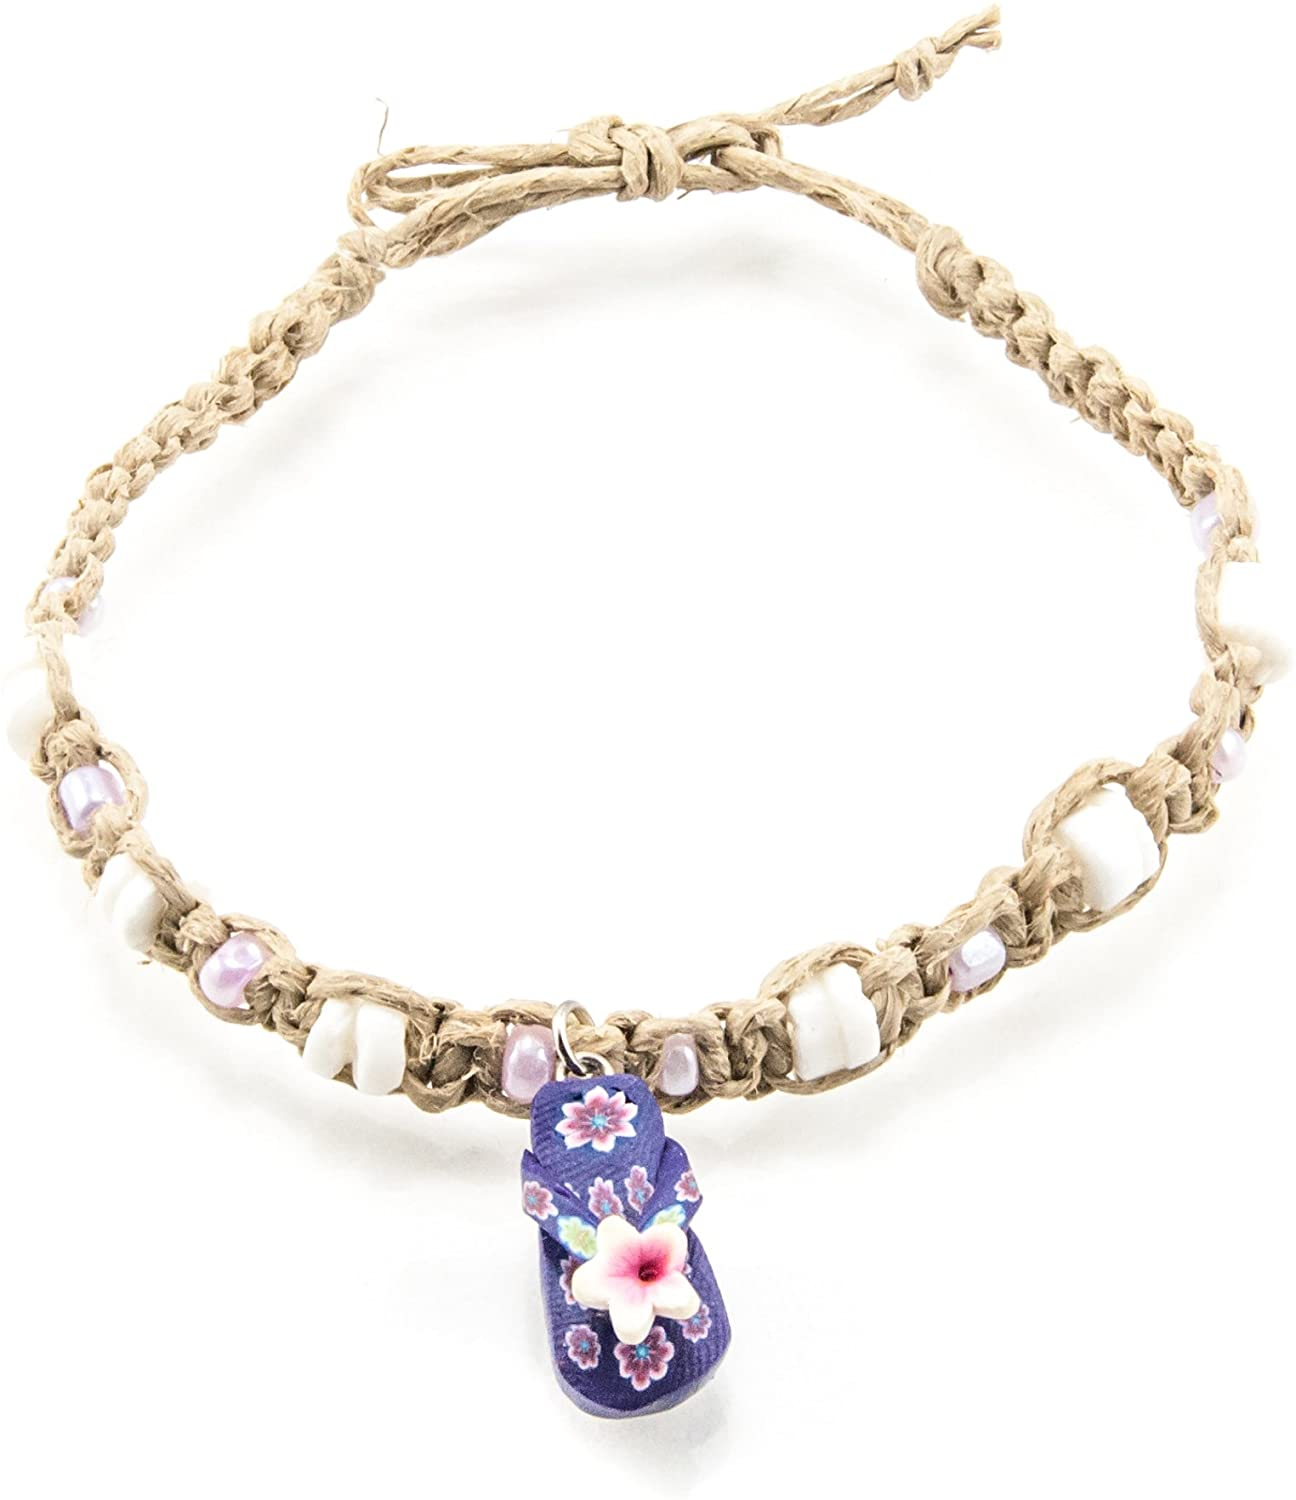 BlueRica Hemp Anklet Bracelet with Purple Glass Beads, Shells & Purple Sandal Charm